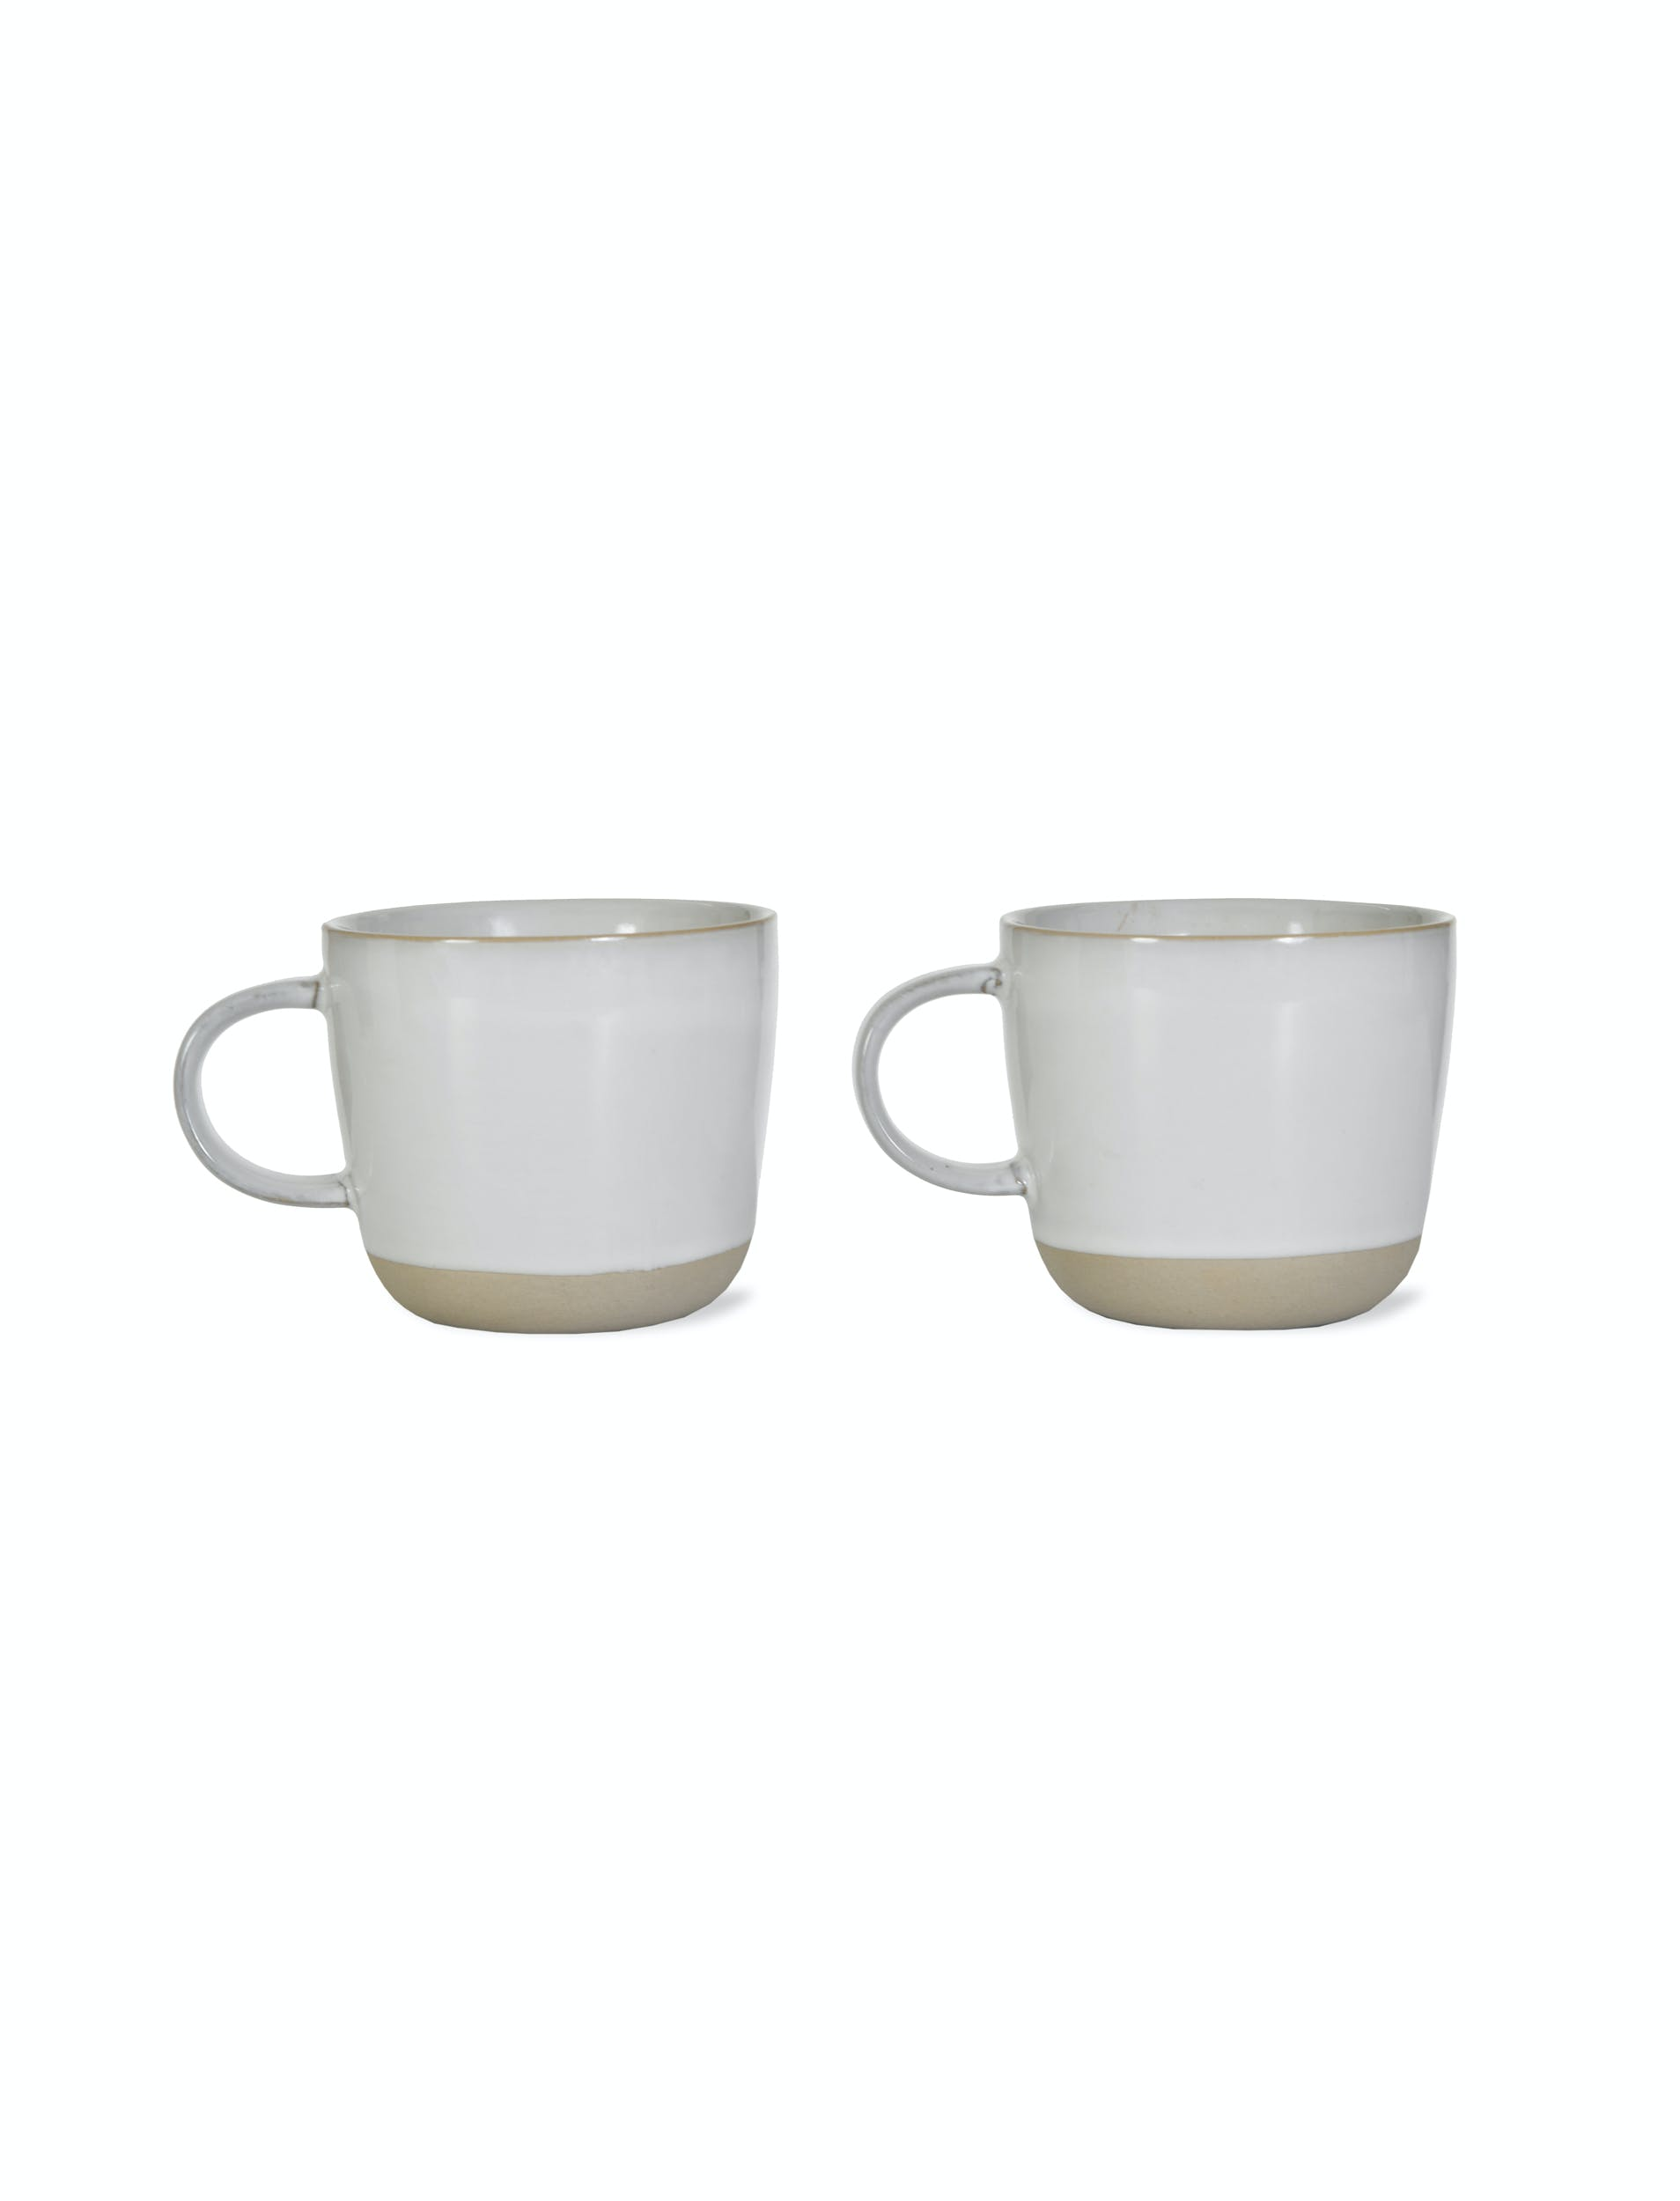 Pair of Ceramic Mugs